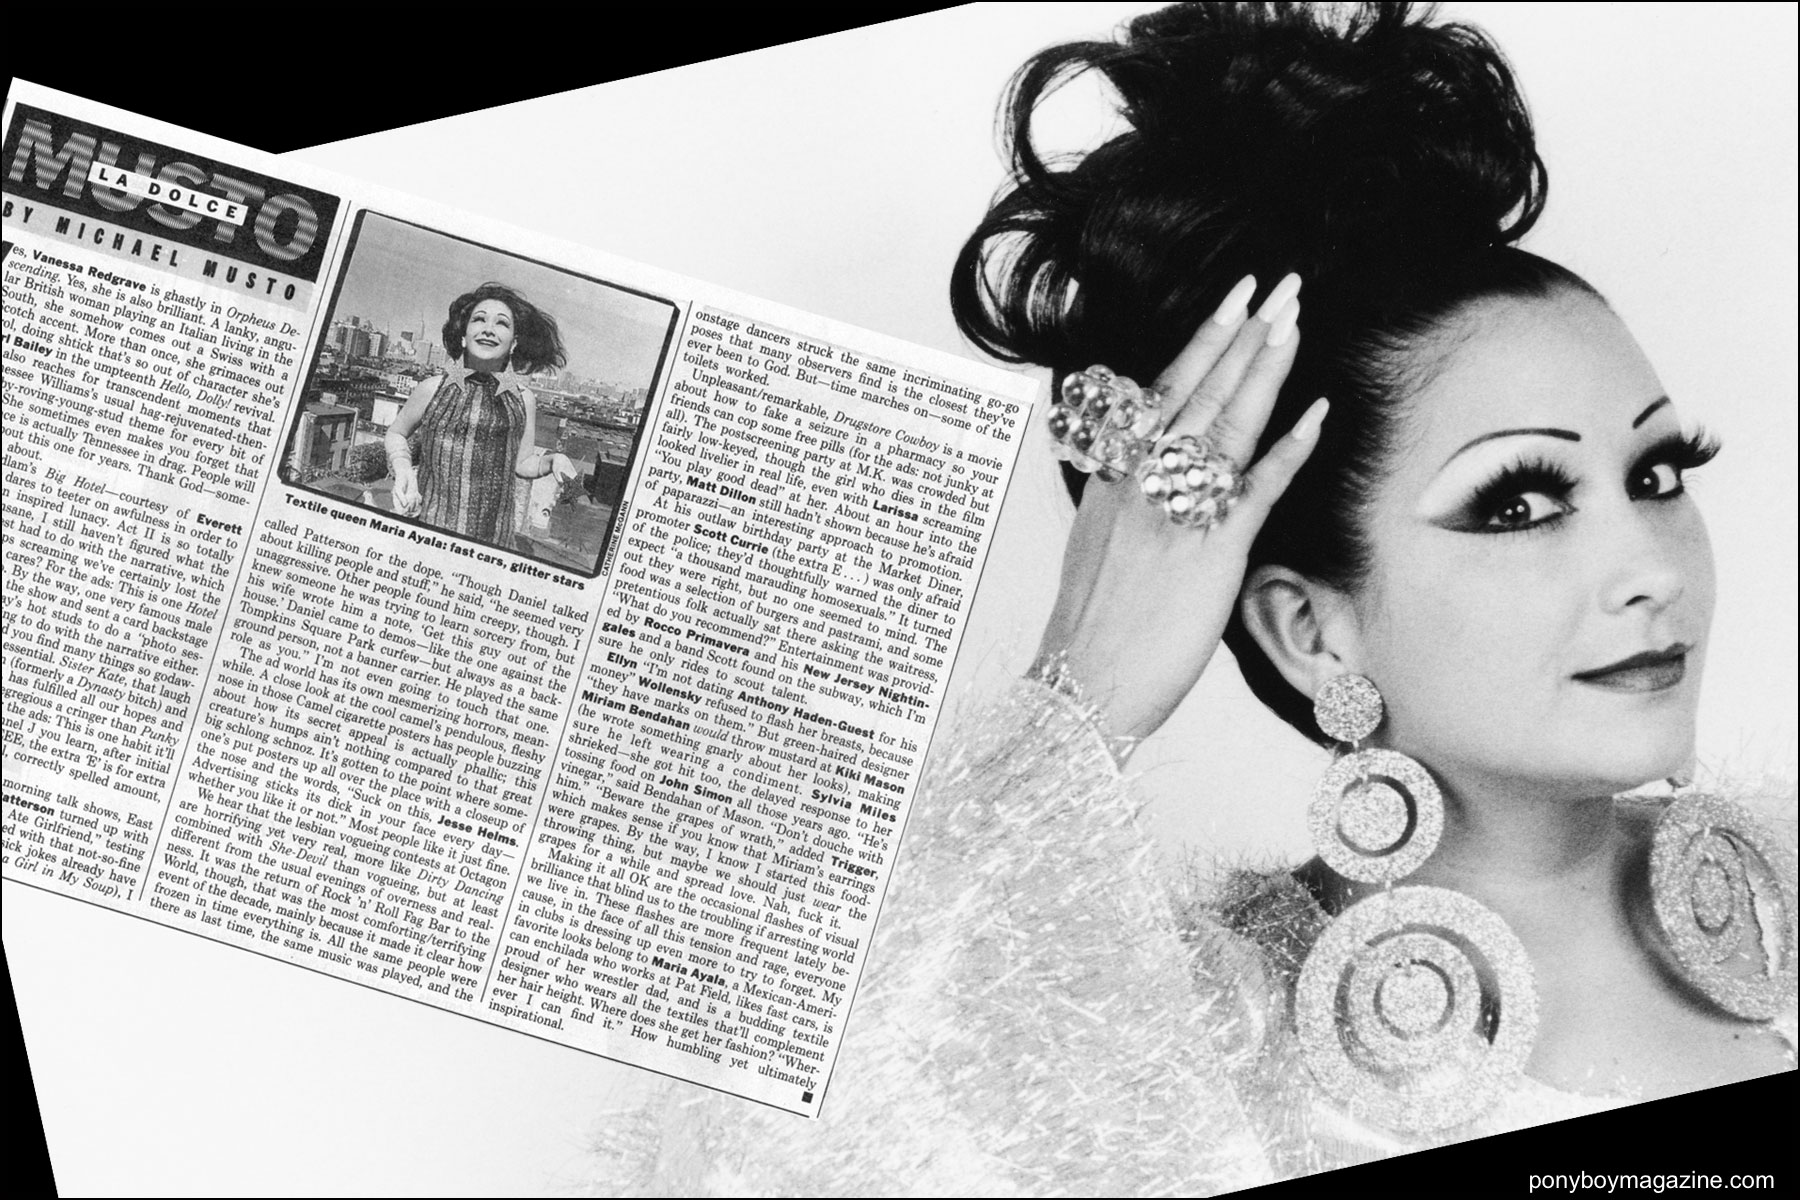 Tearsheet of Maria Ayala photographed for the Michael Musto's Village Voice column. Ponyboy magazine NY.